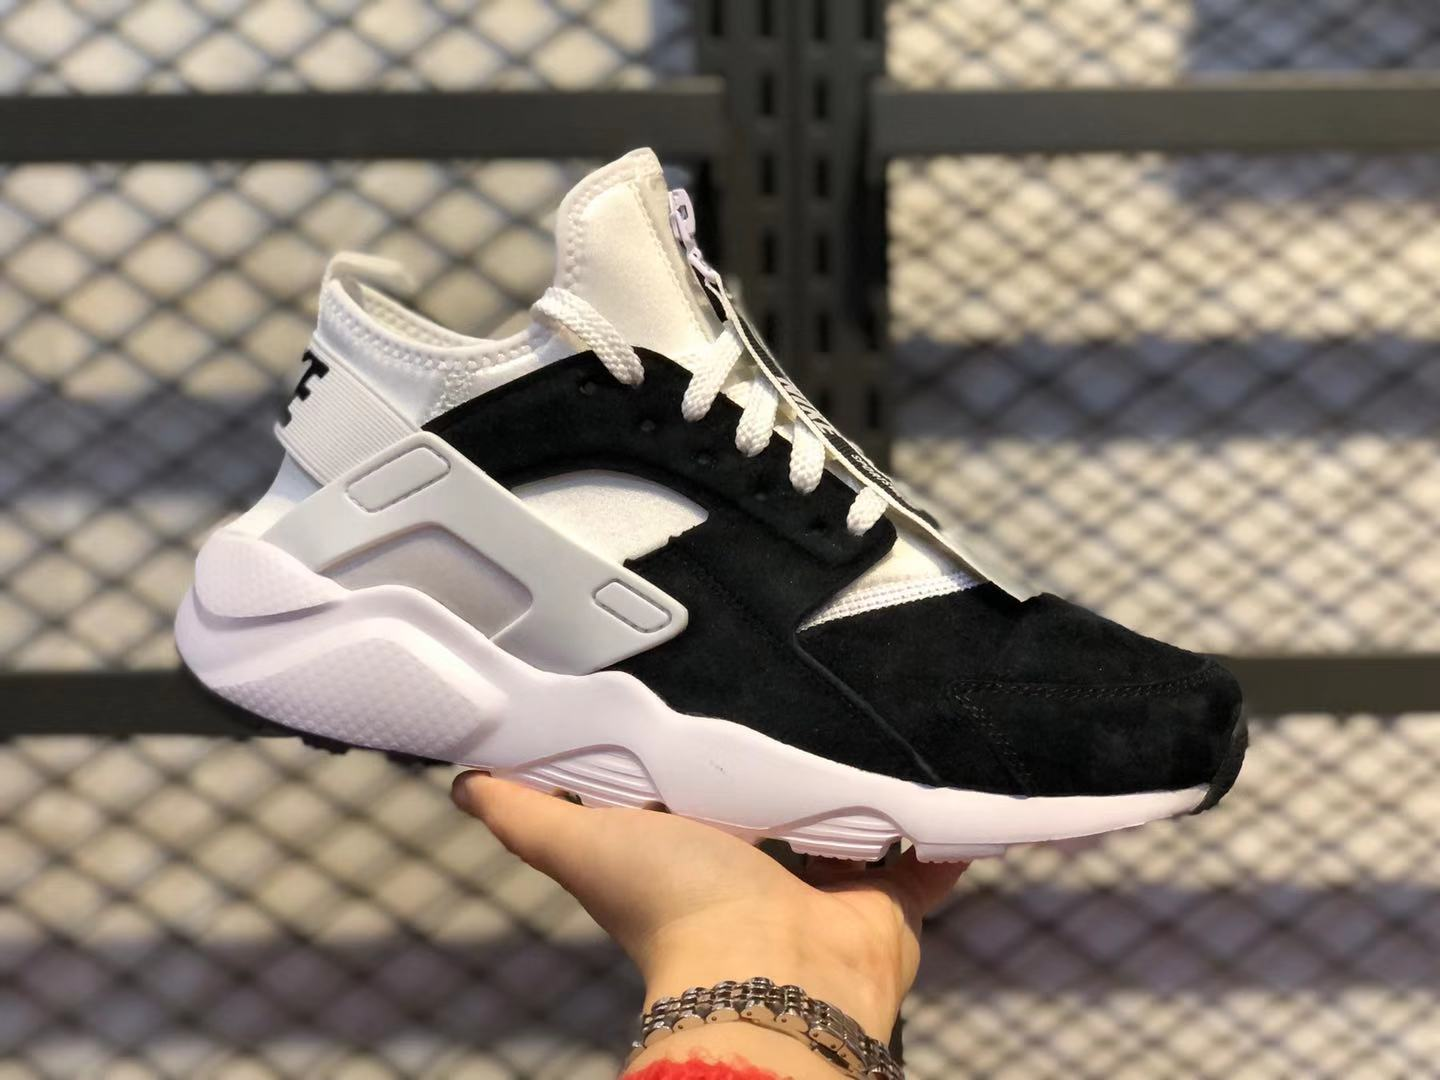 Nike Air Huarache Core Black/White Athletic Sneakers 829669-555 For Buy